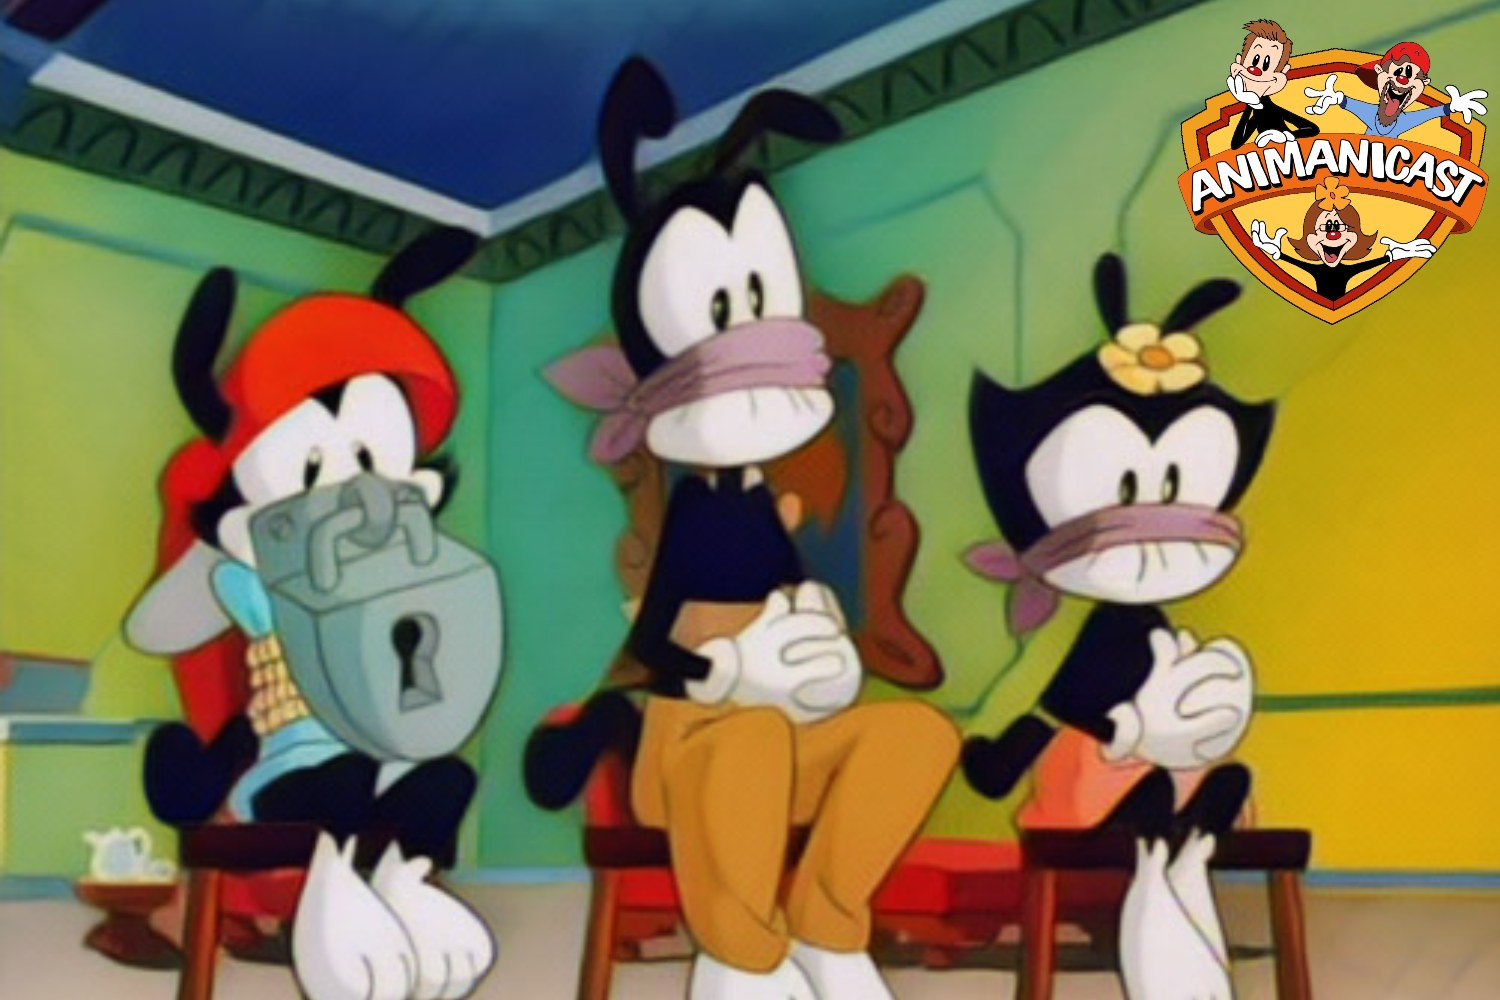 Exclusive Animaniacs Reboot News